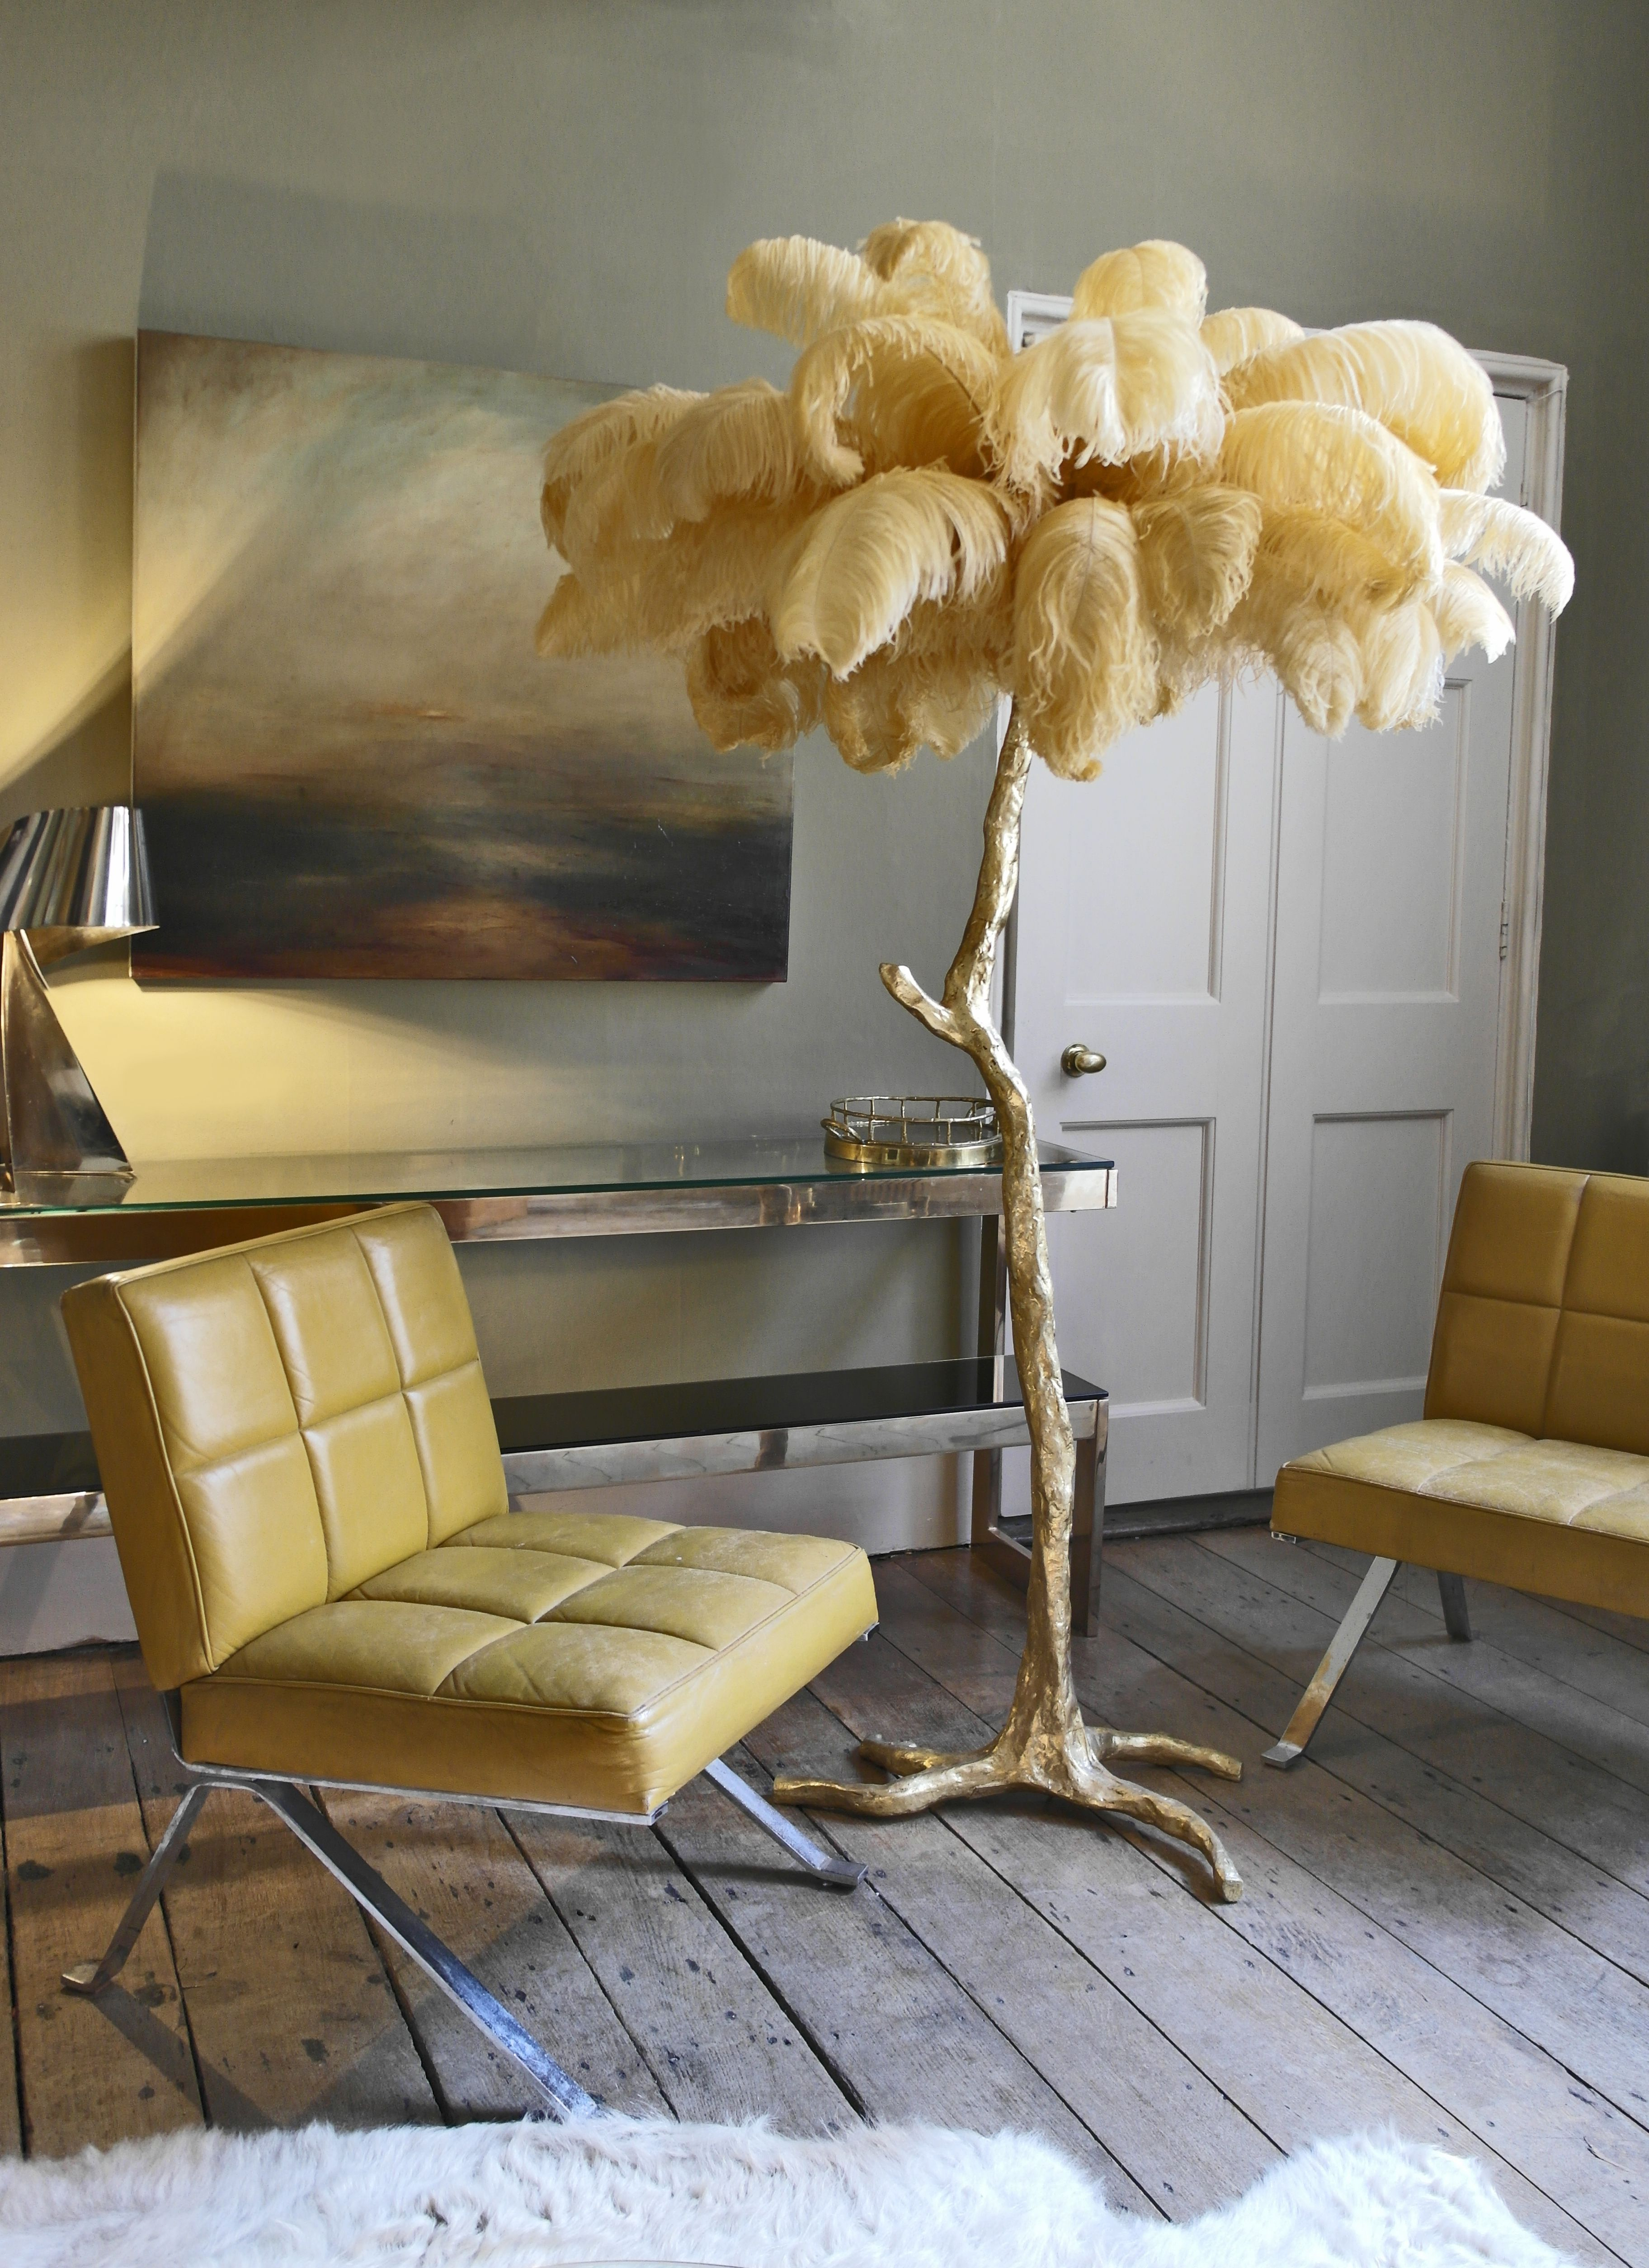 Ochre An Illuminating Palm Tree Resplendent With Exquisite Ostrich Feather Foliage Amoderngrandt Feather Decor Luxury Living Room Inspiration Feather Lamp